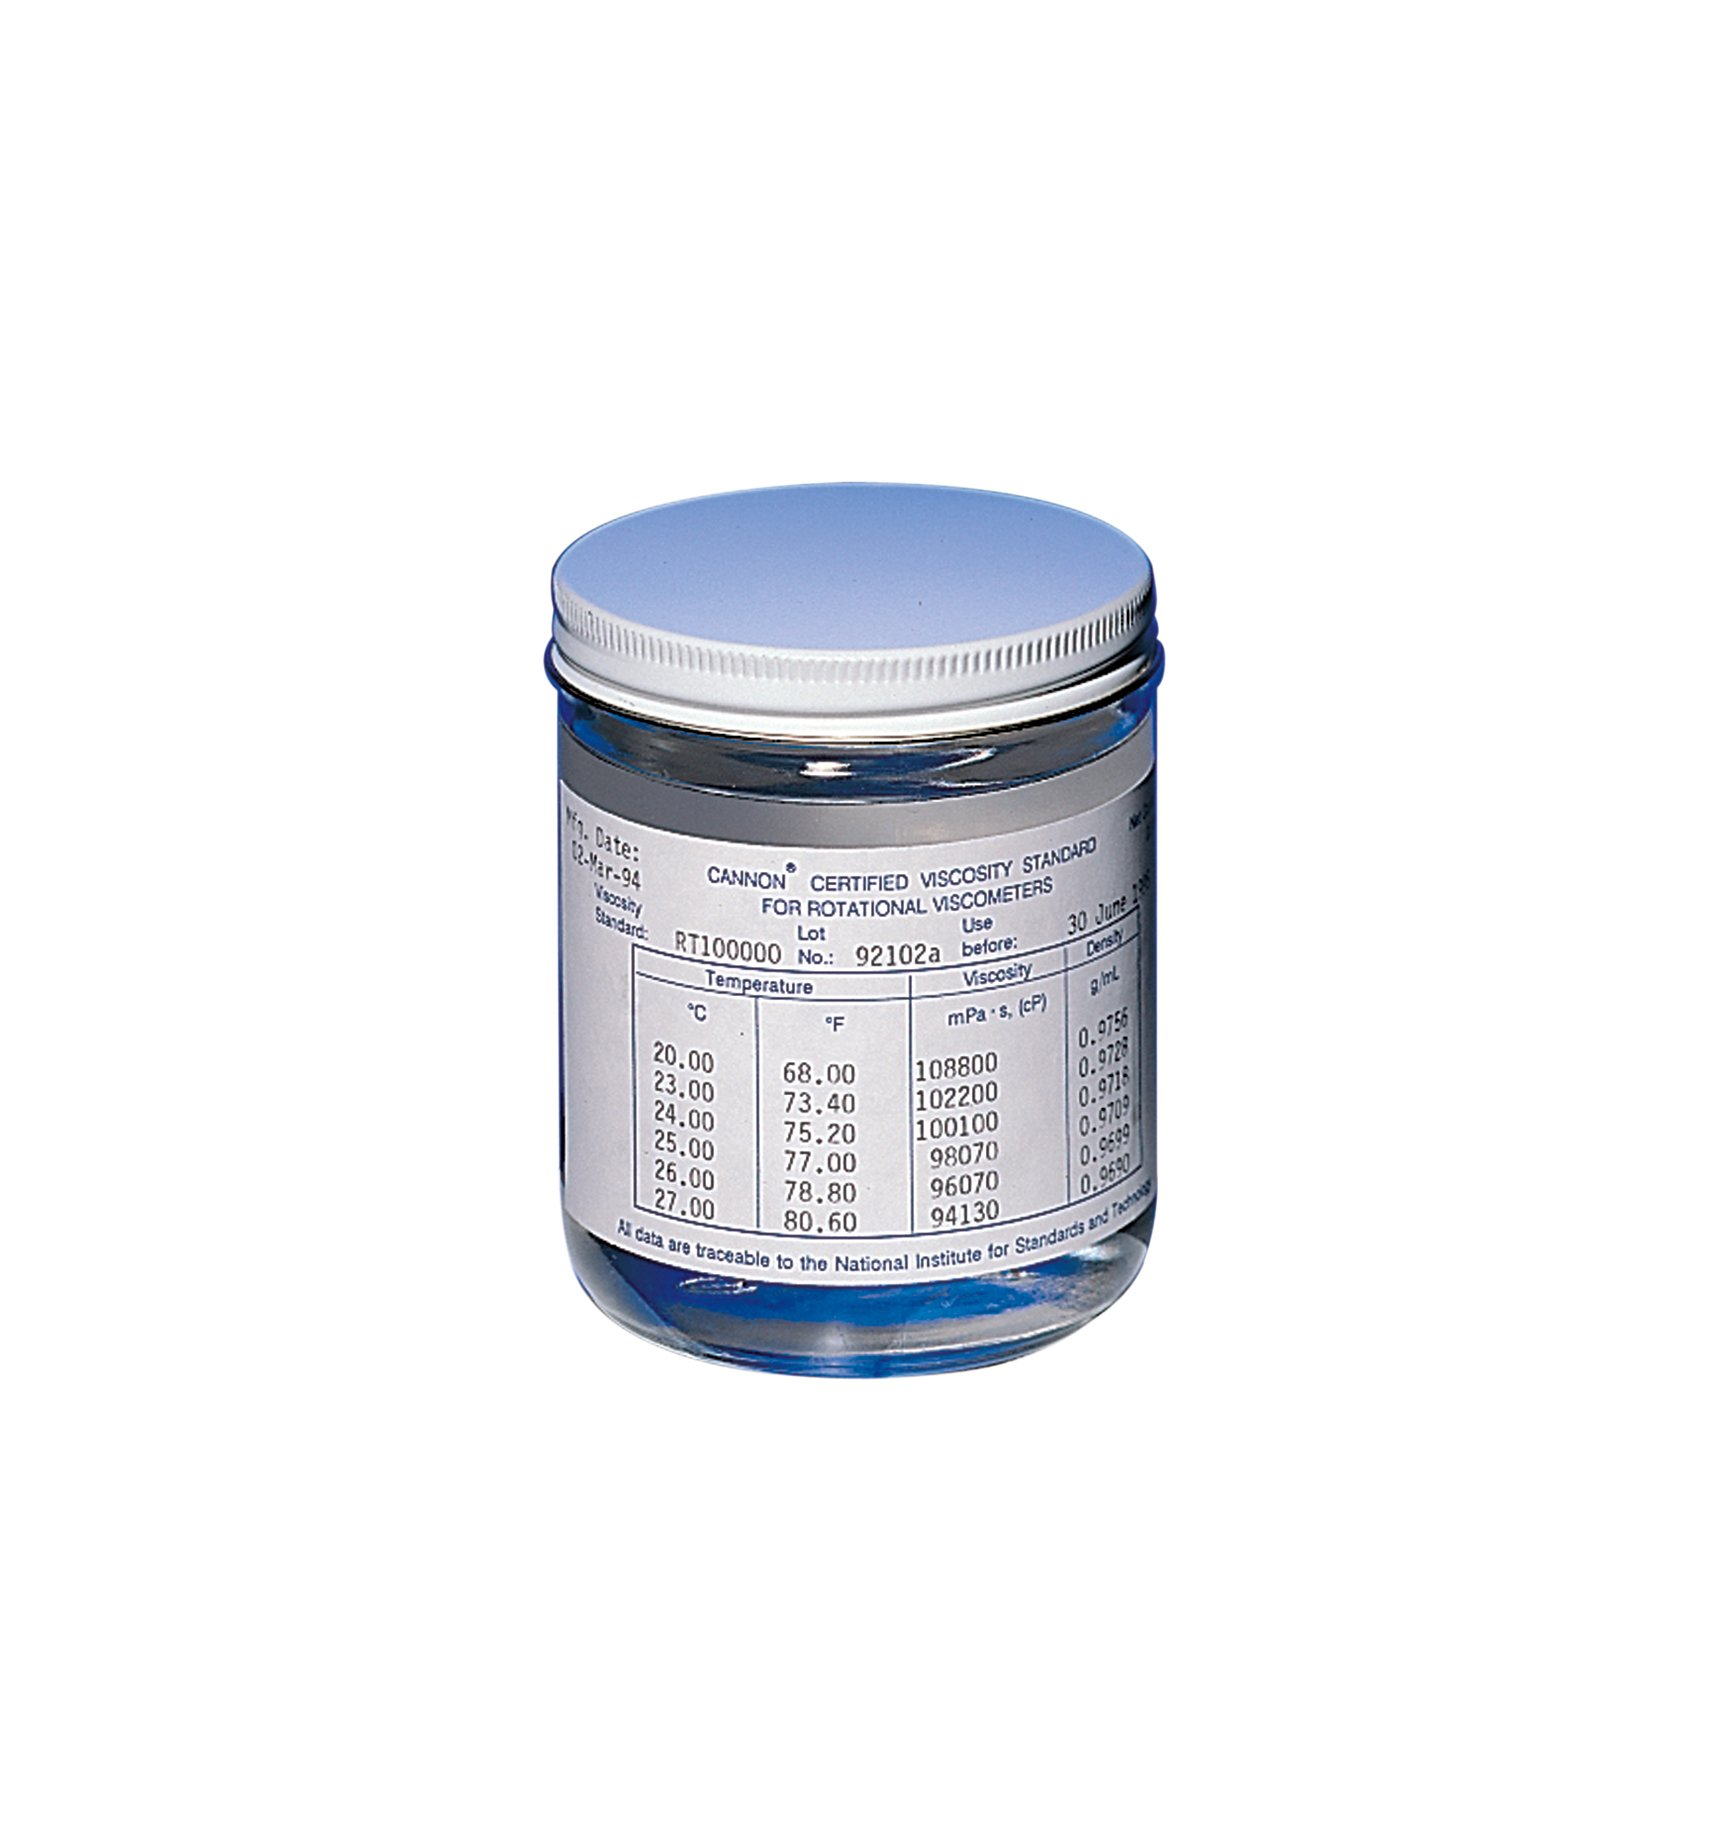 Cannon Silicone Viscosity Standard for Rotational Viscometers, 500 Cap at 25 Deg C, 500 ml Volume